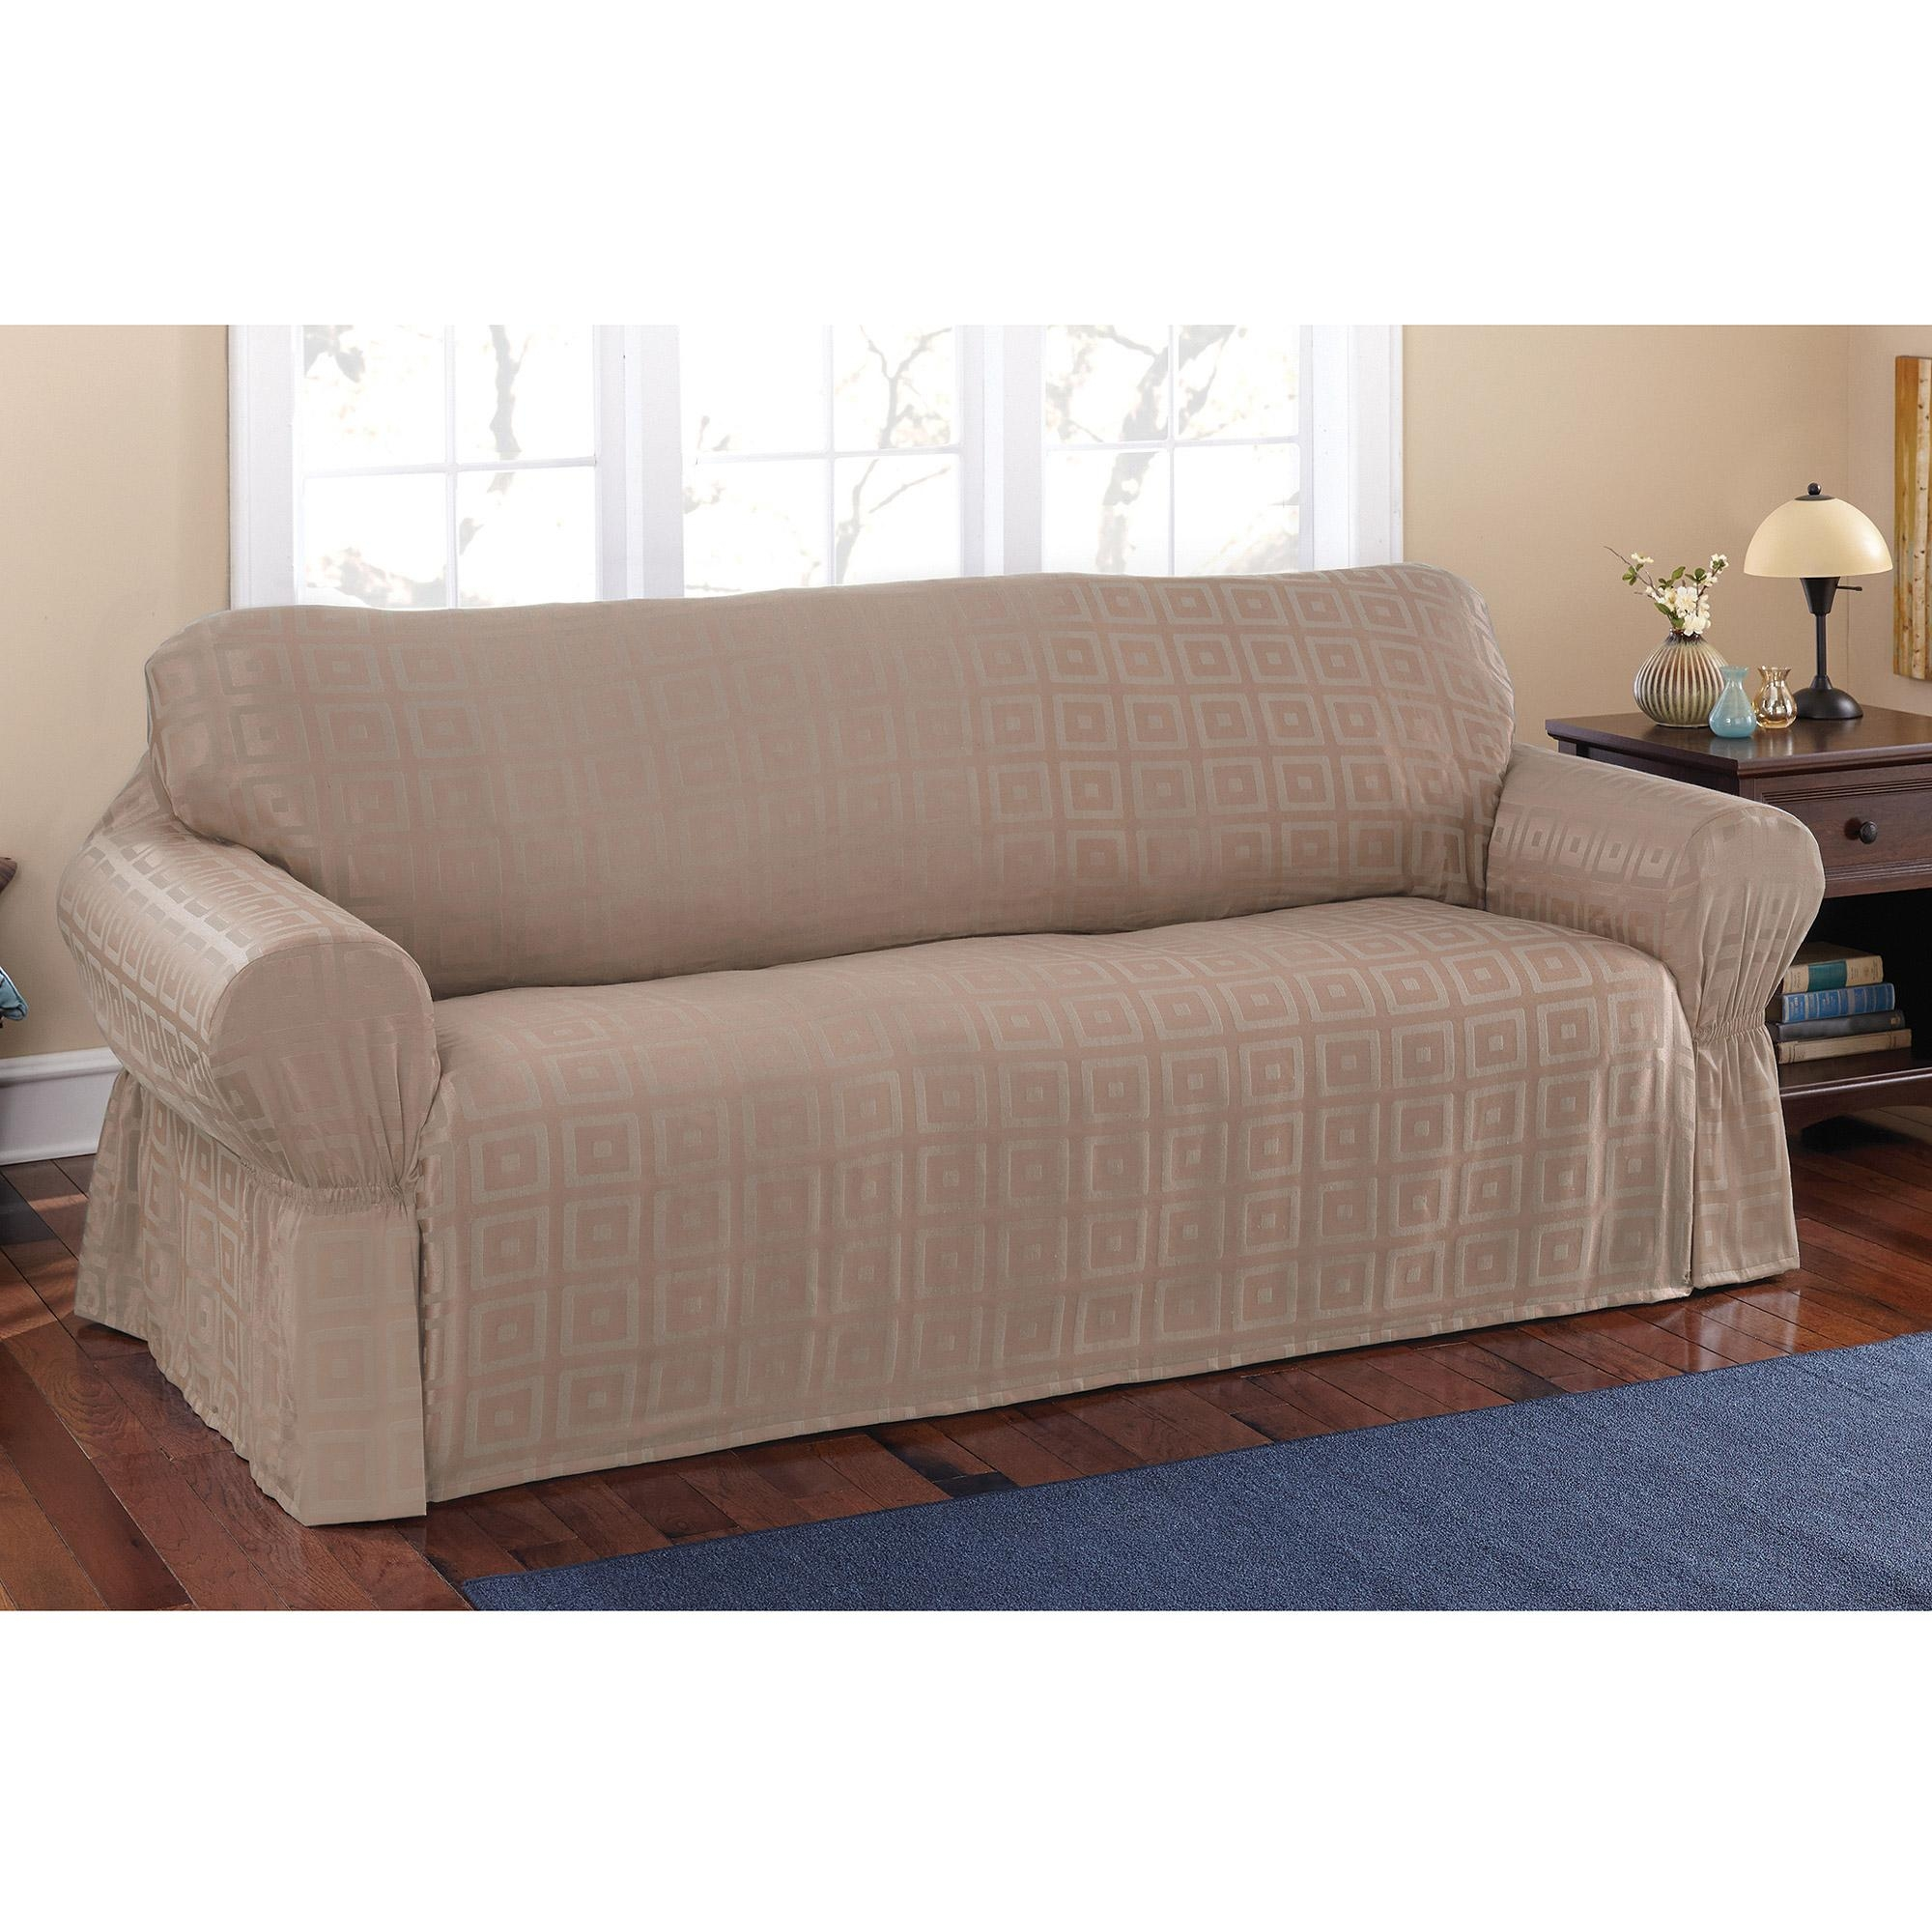 Sofas Center : Armless Sofa Couch Covers Leather Cover Walmart As With Regard To Armless Couch Slipcovers (View 12 of 20)